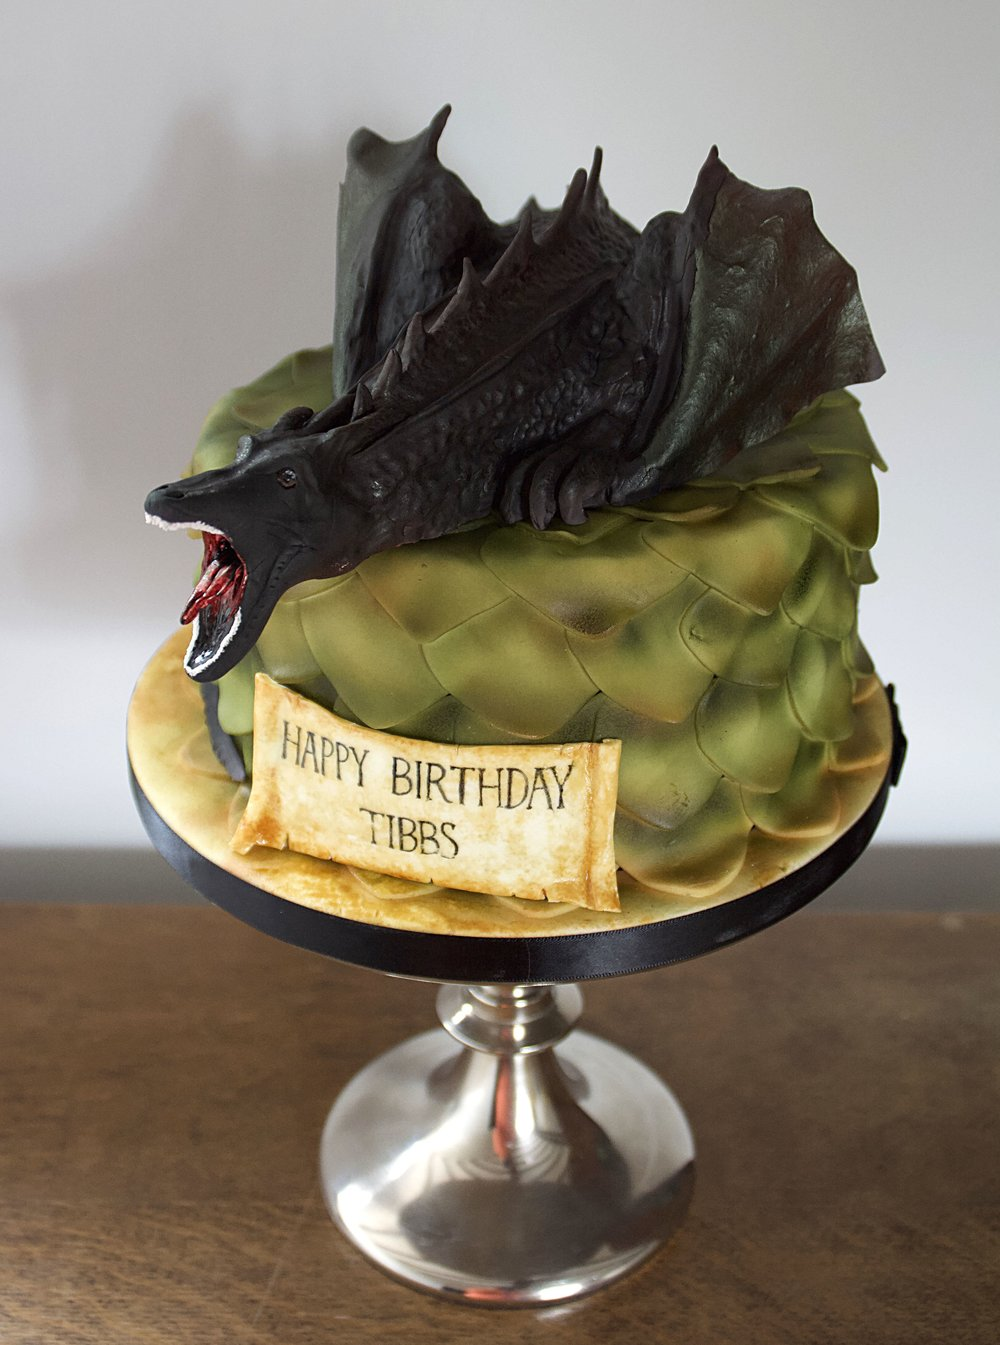 IMG_Game_of_Thrones_dragon_cake.jpg